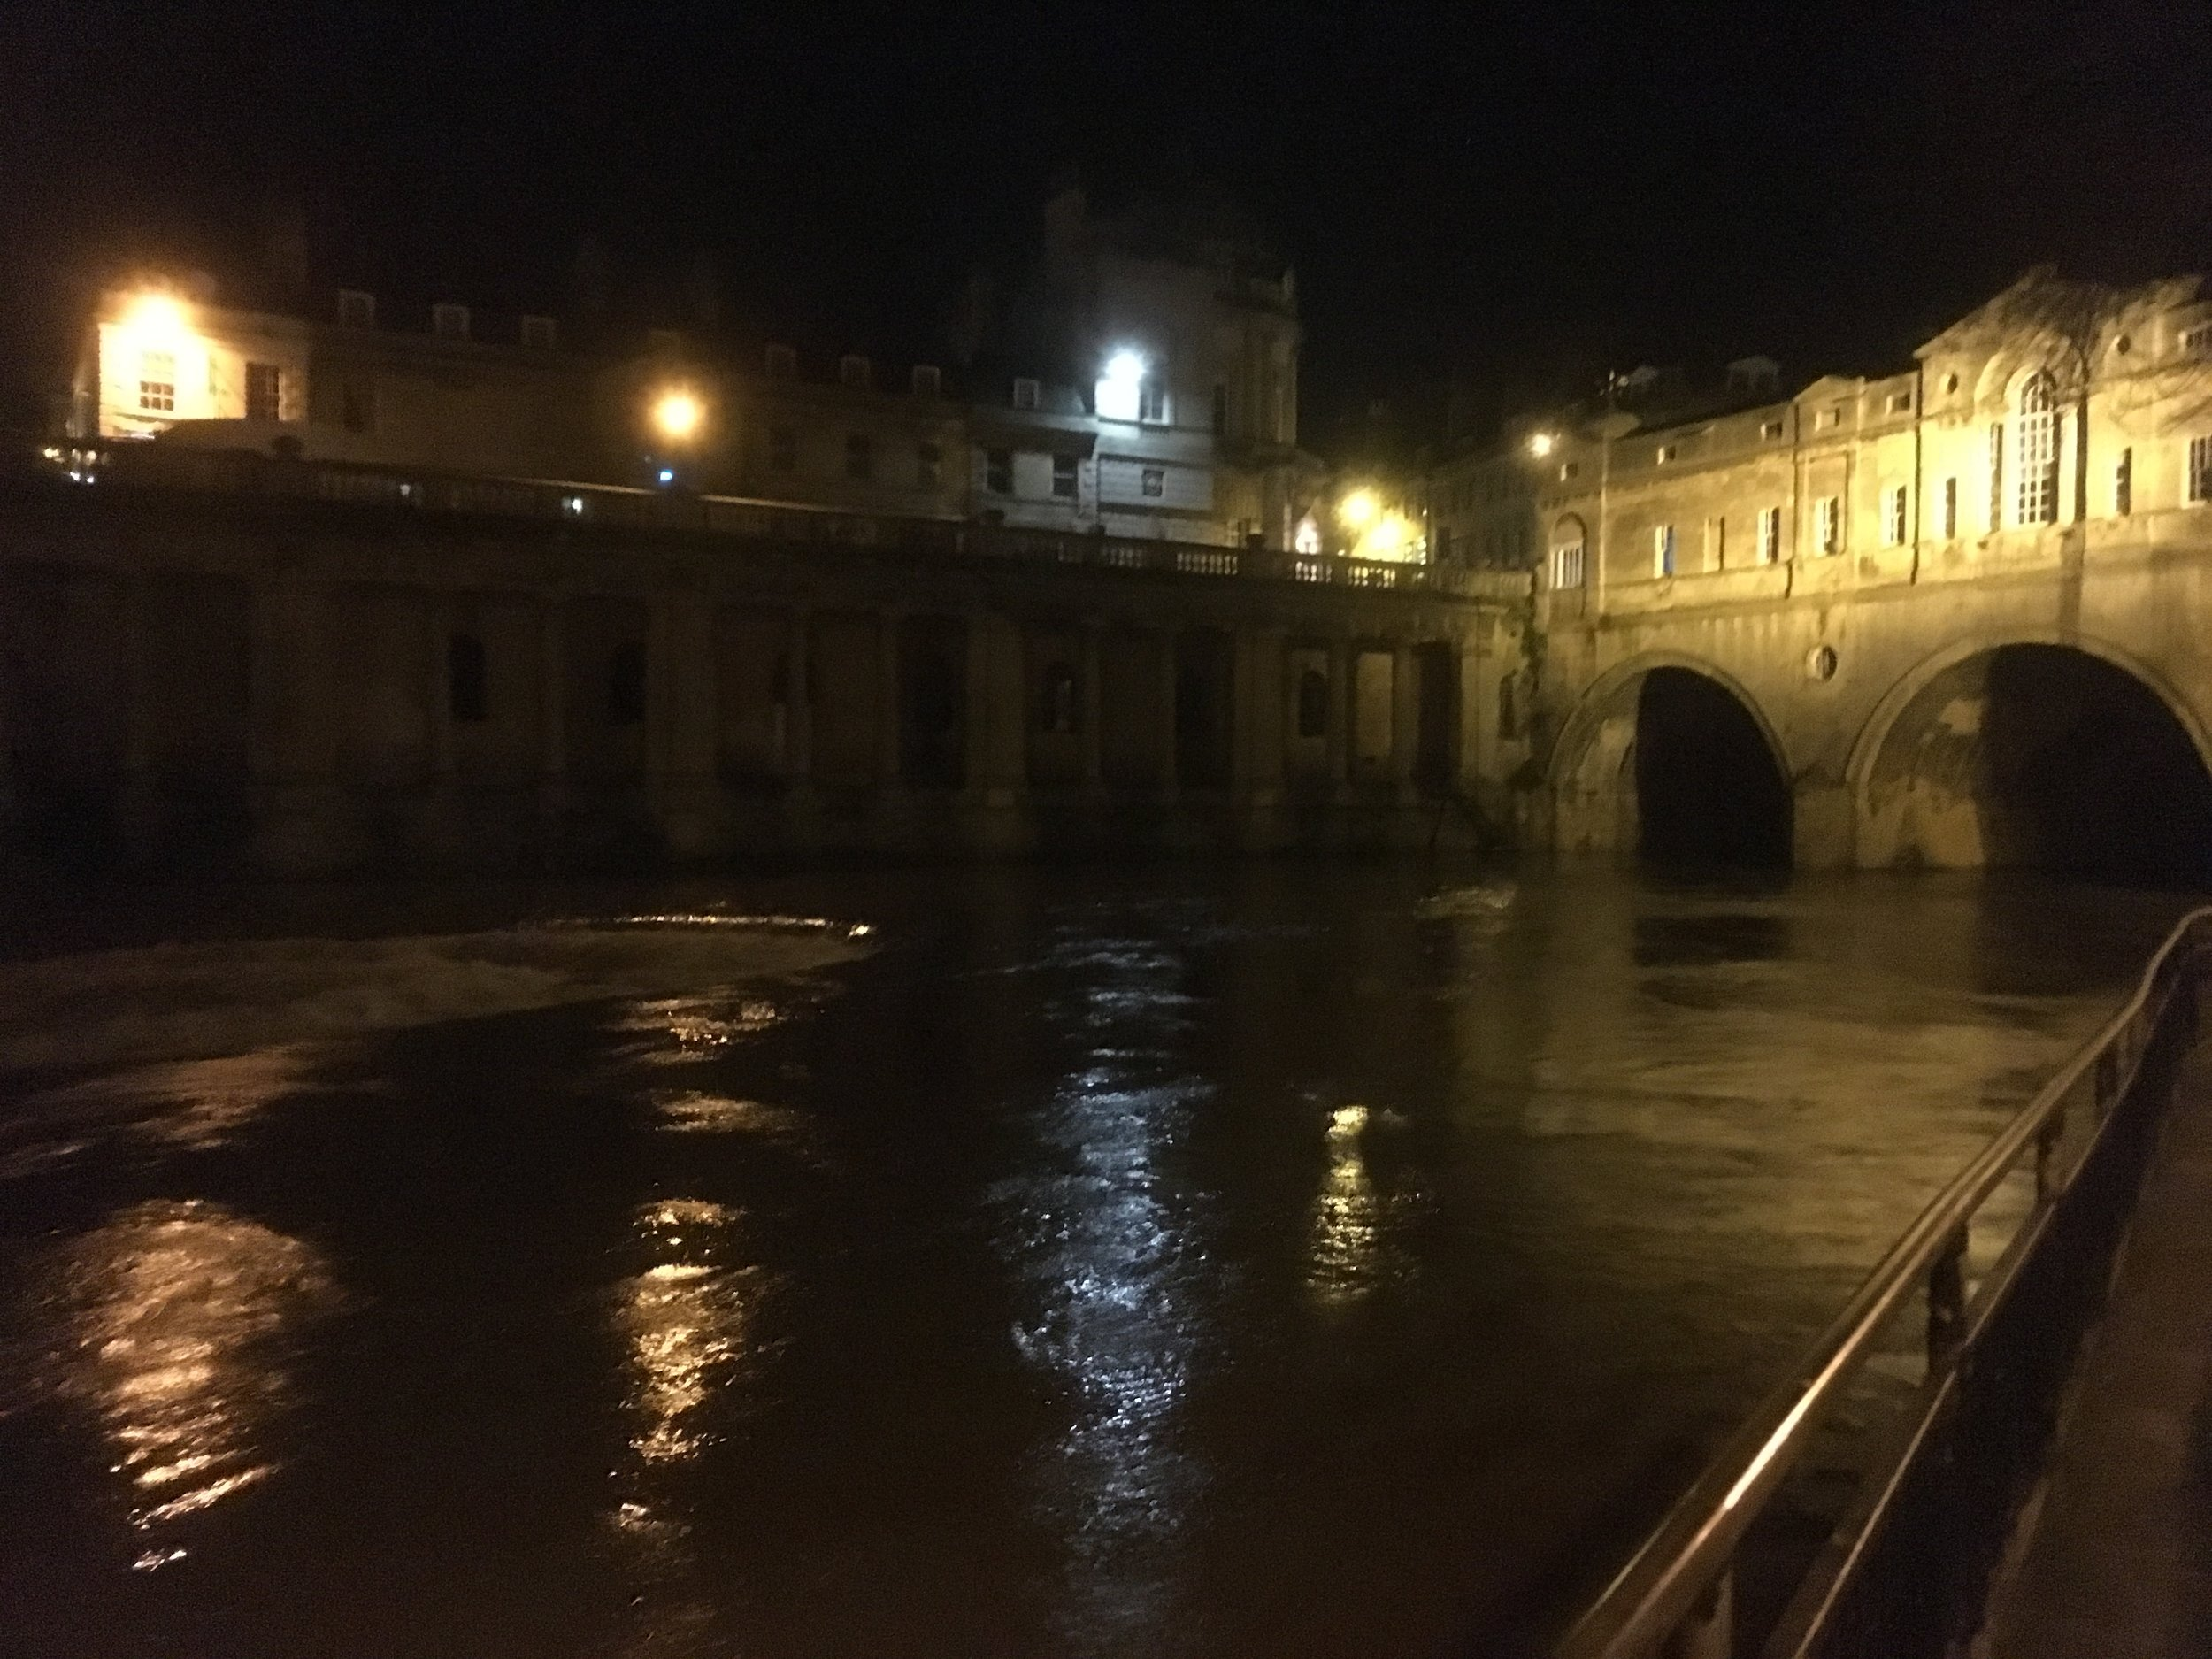 Millions of gallons of flood water pouring over the weir below Bath's famous Pulteney Bridge.